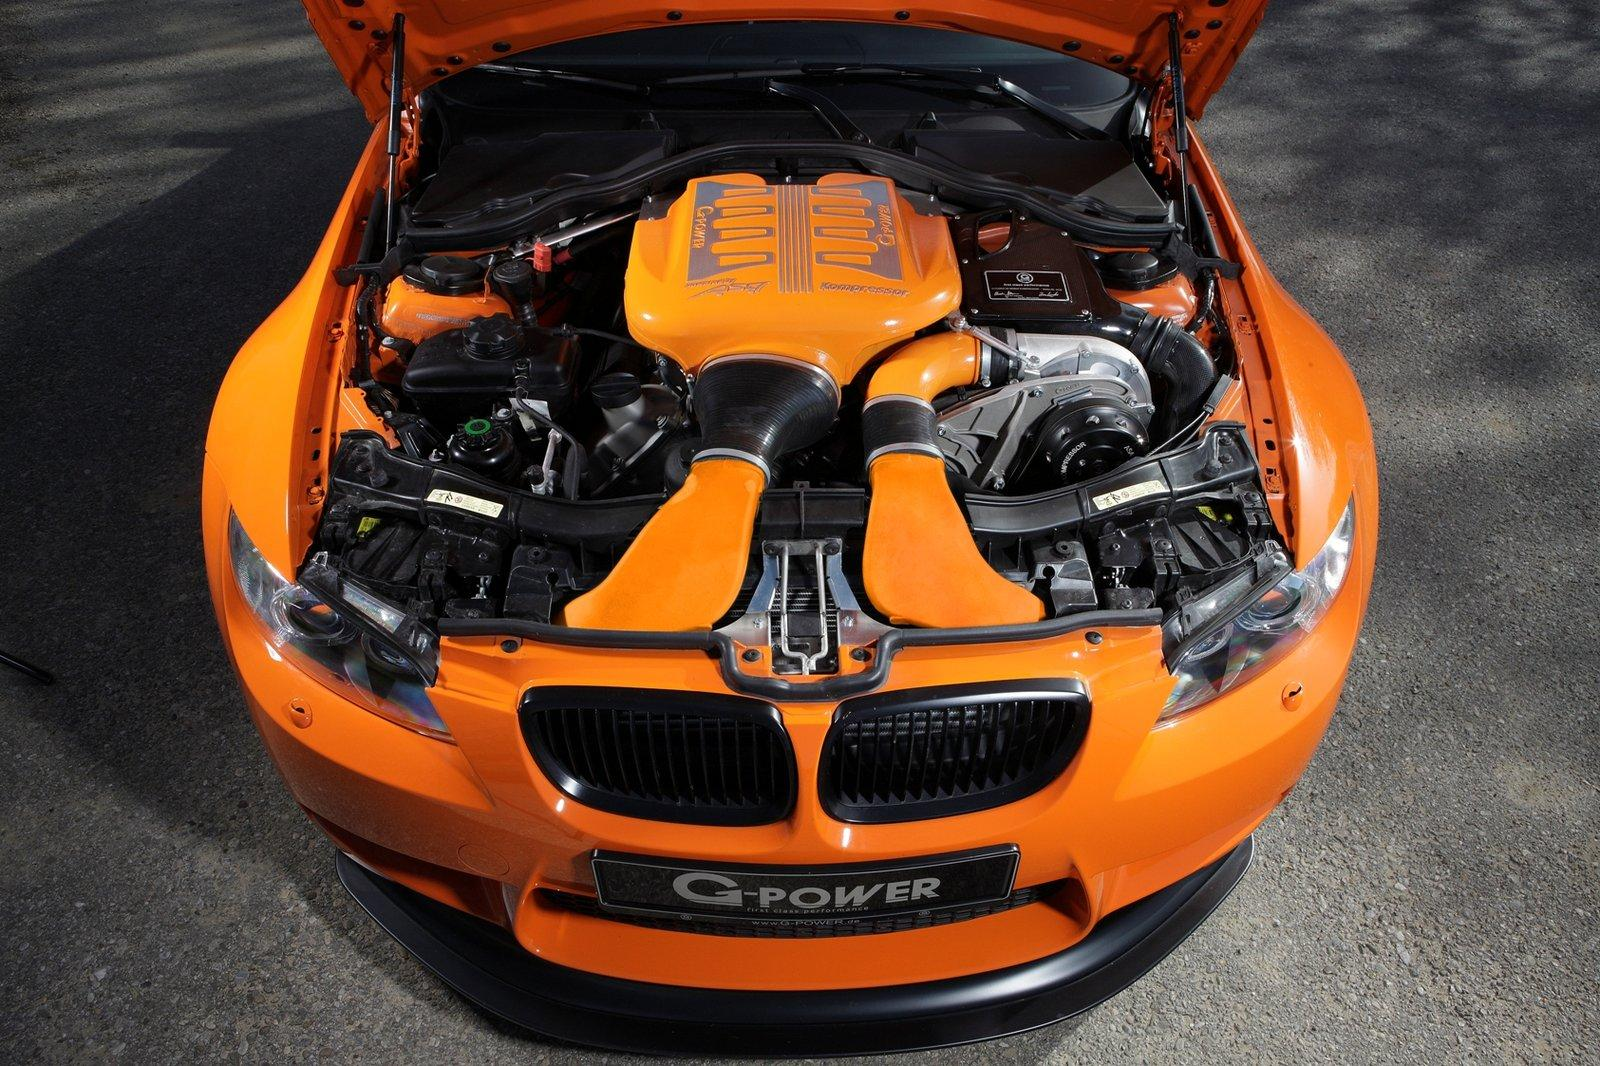 http://www.automobilesreview.com/img/g-power-bmw-m3-gts-sk-ii/g-power-bmw-m3-gts-sk-ii-15.jpg